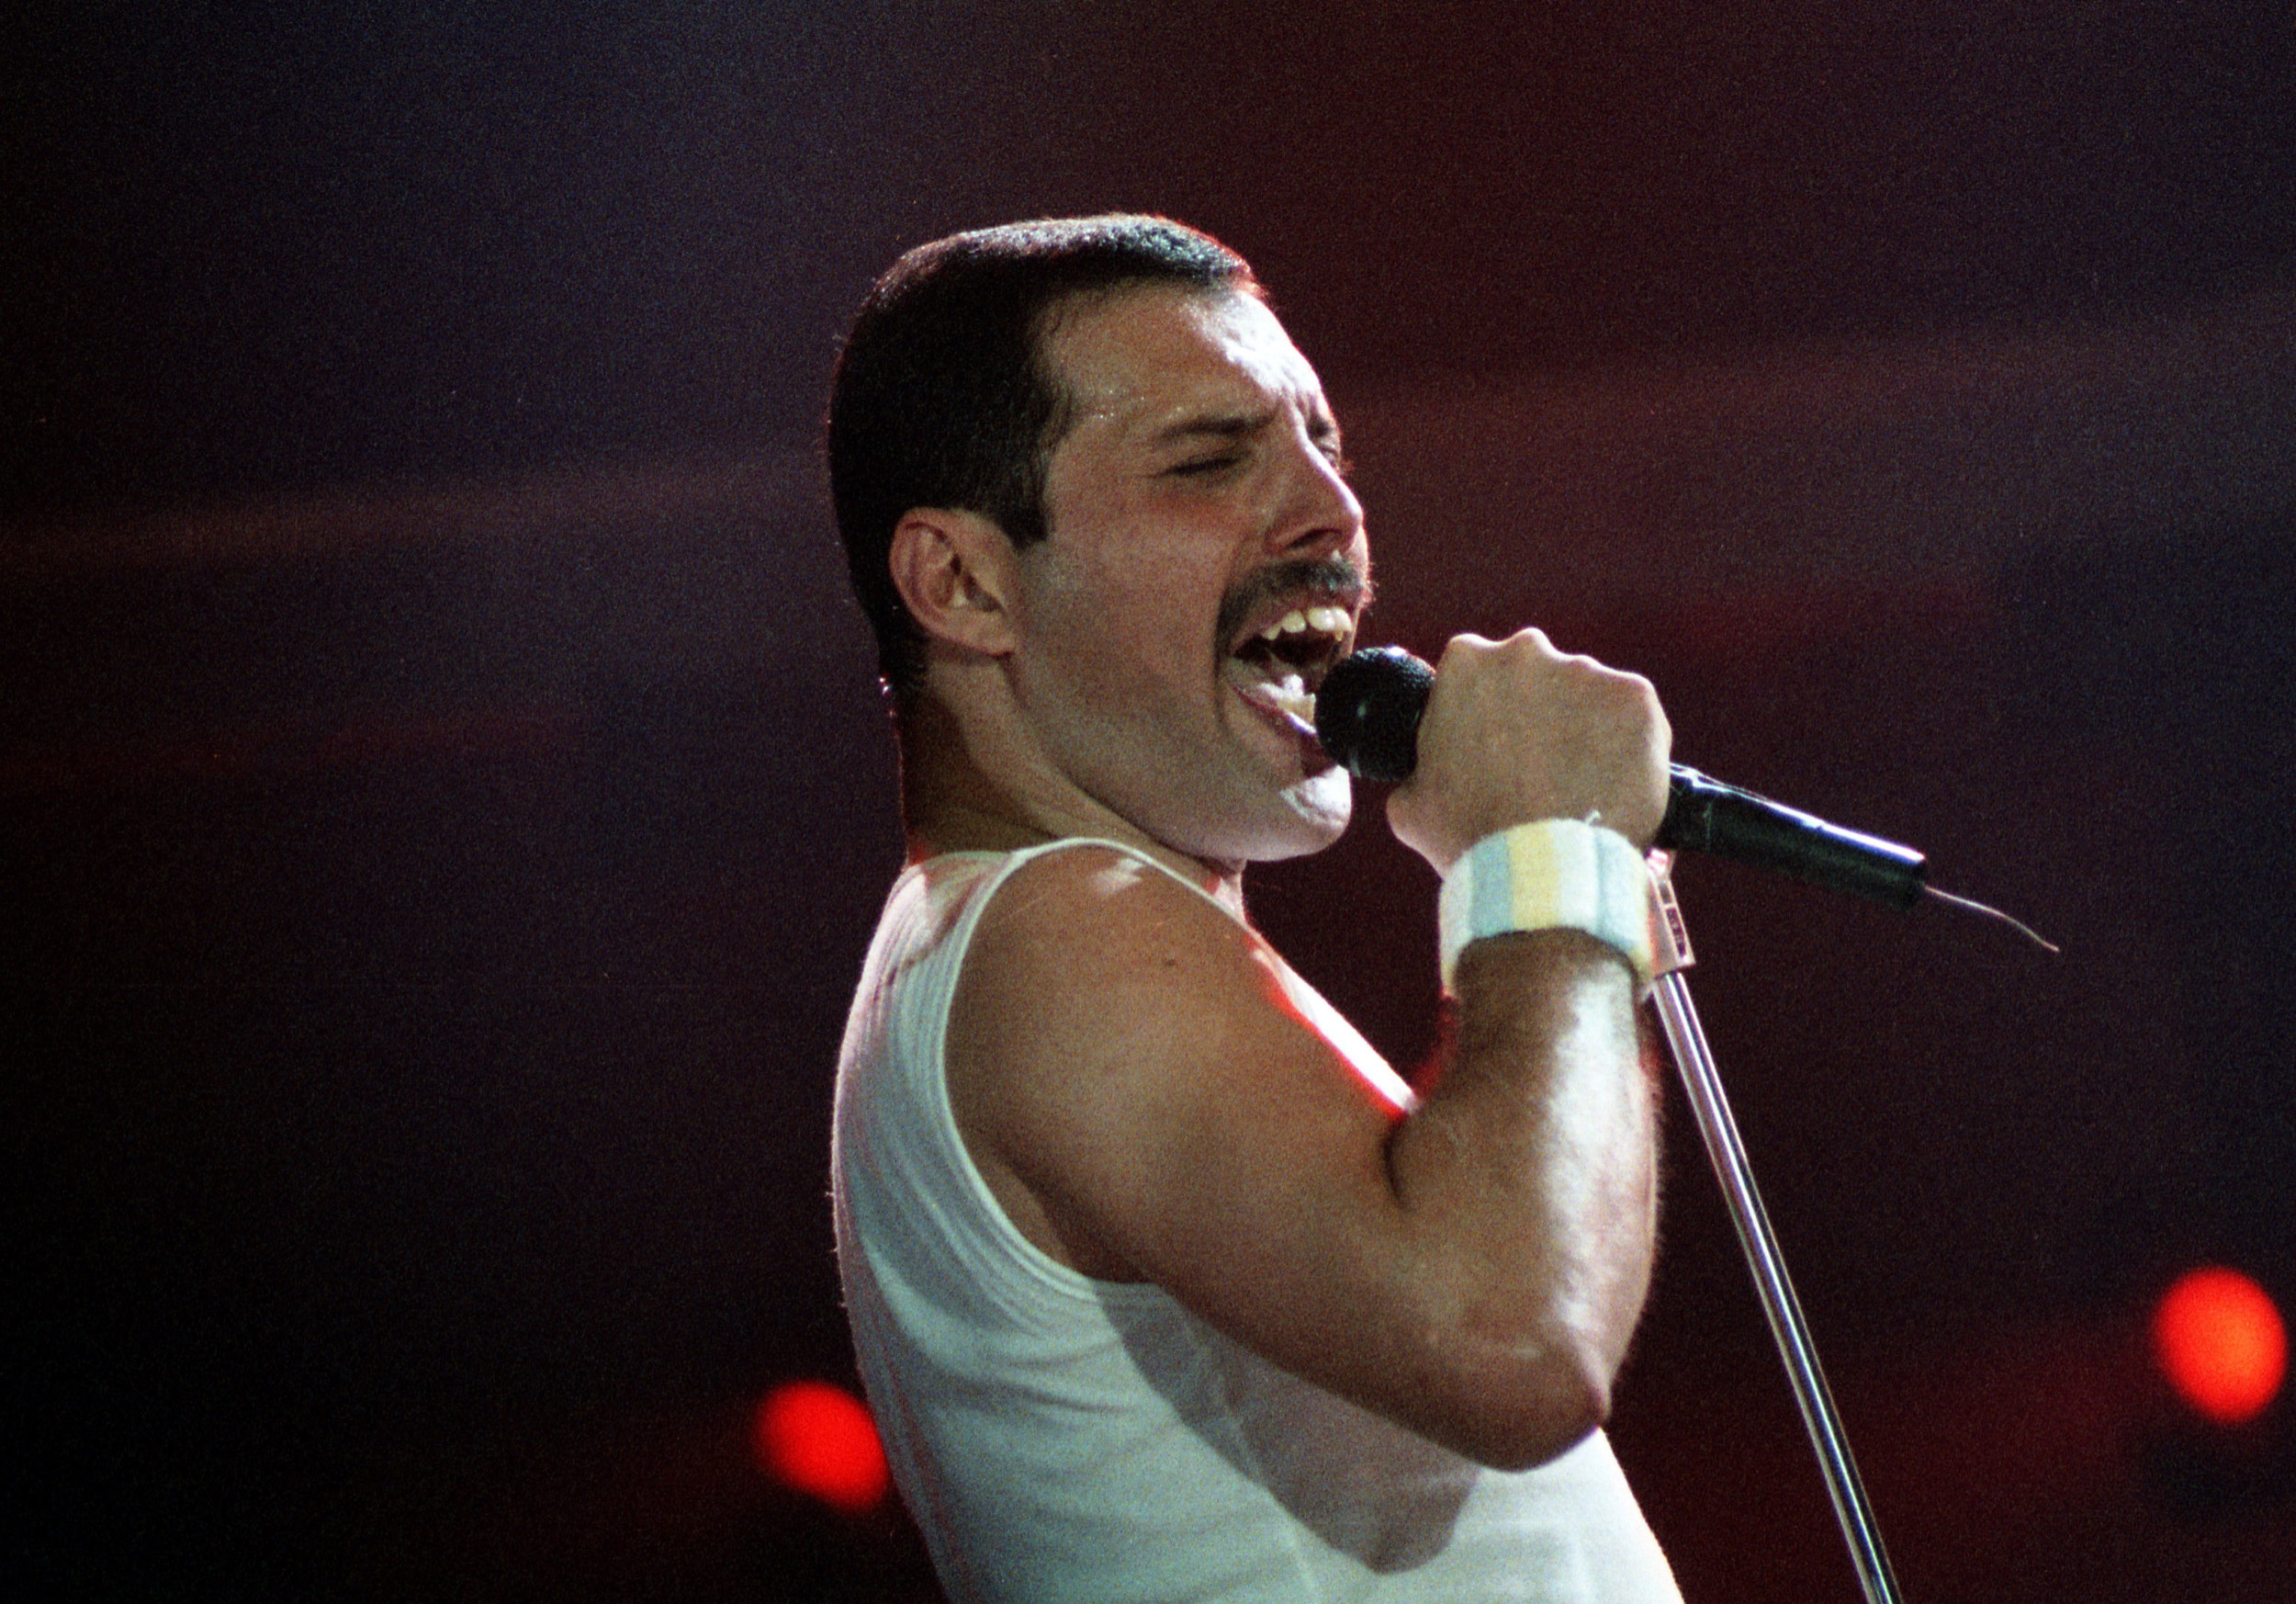 pop muziek popmuziek muzikanten artiest Queen zanger Freddie Mercury Groenoordhallen Leiden 11 6 1986 The Magic Tour laatste tour Freddie rock